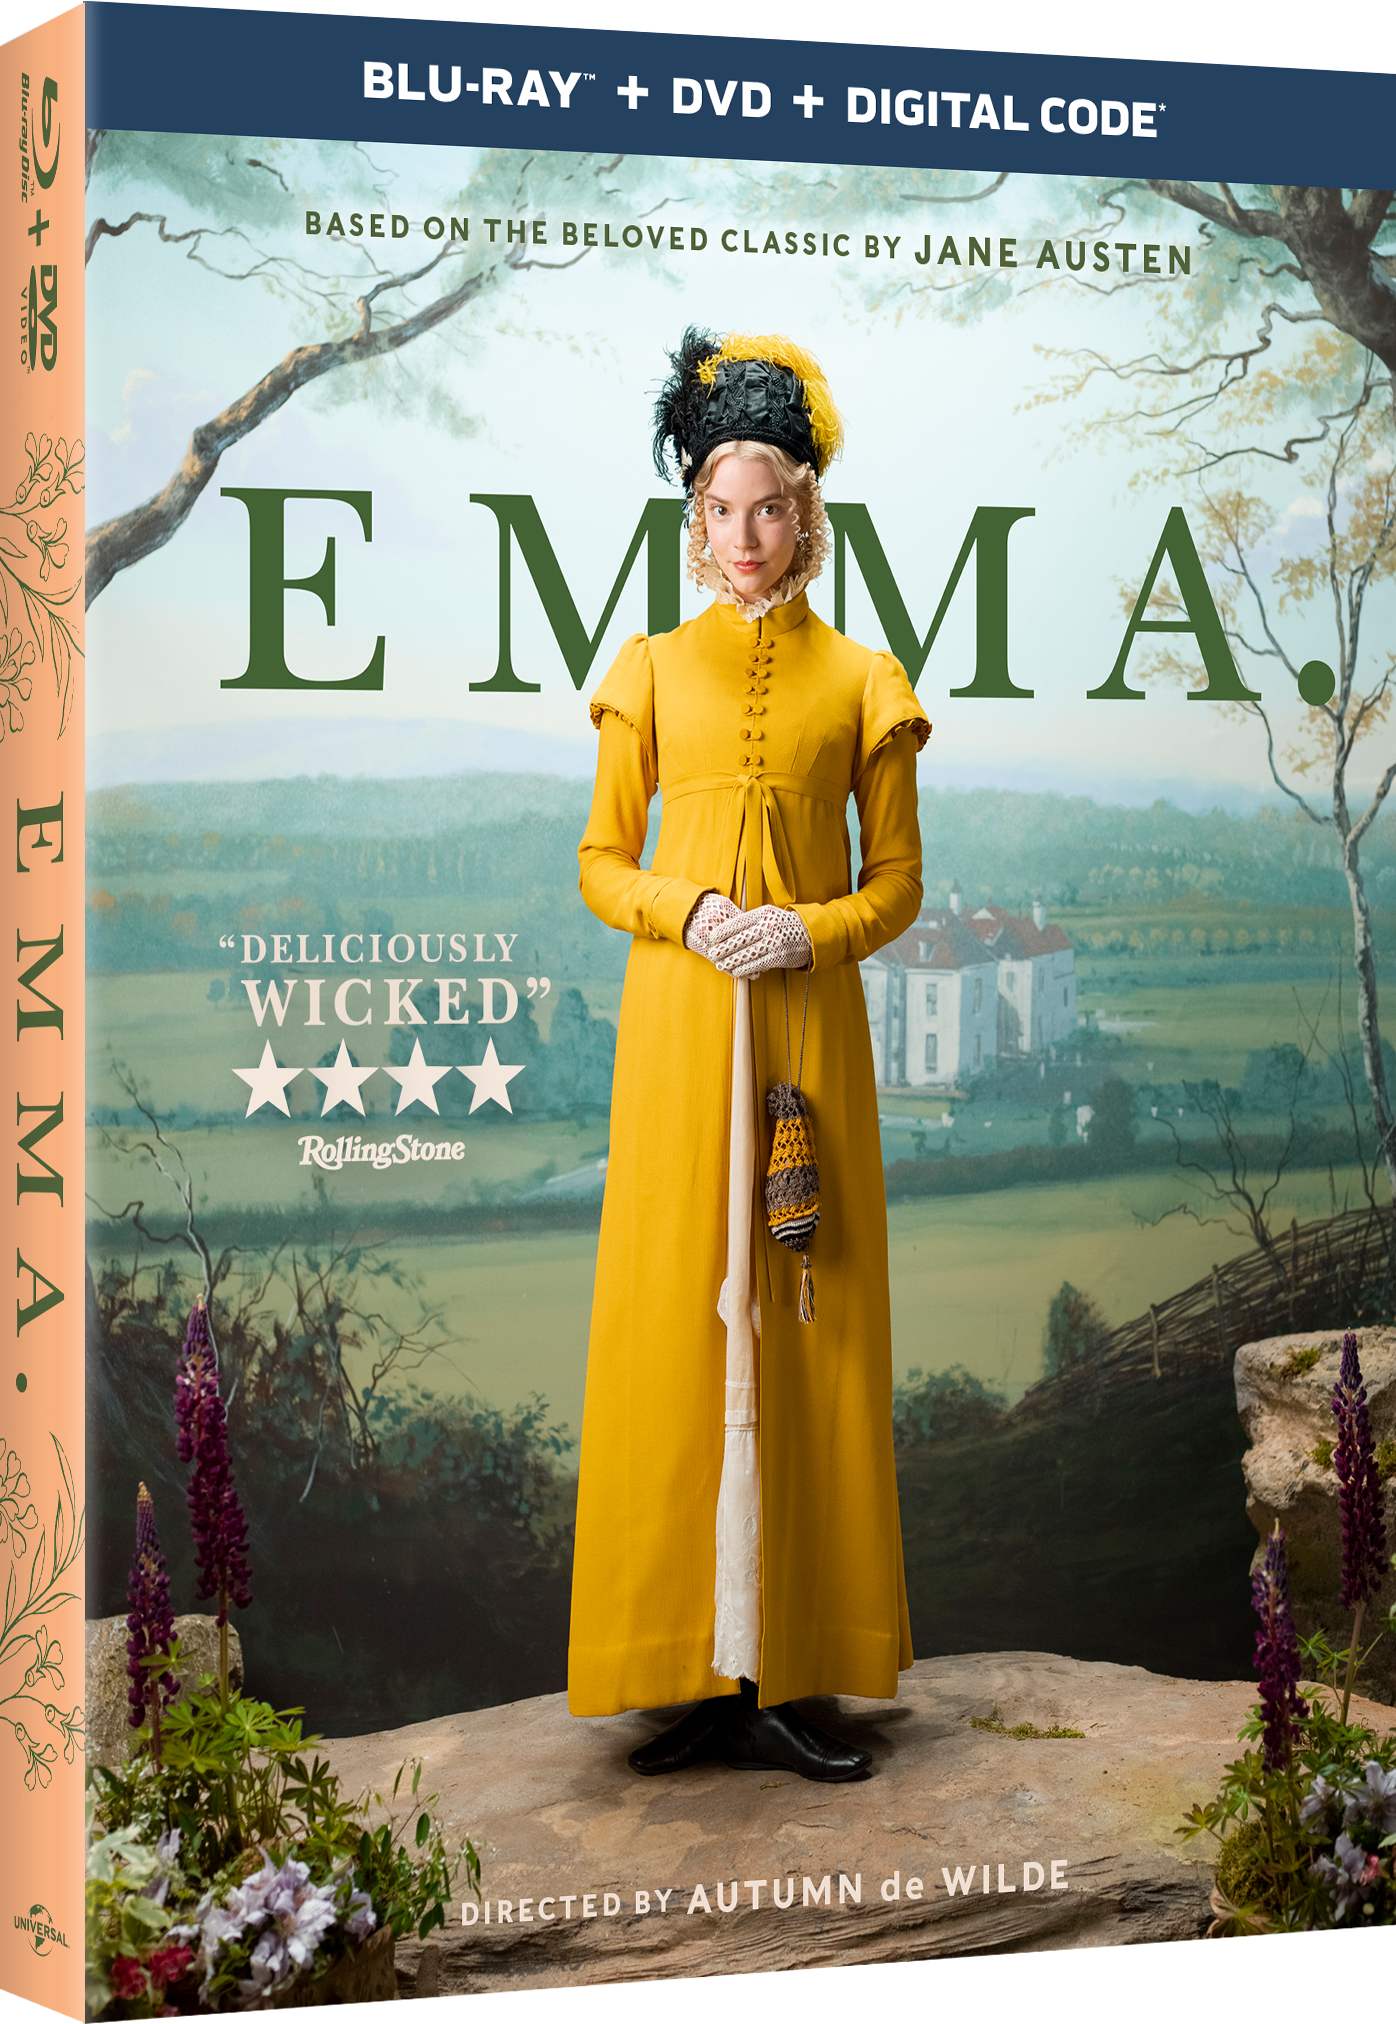 Emma Movie Blu-ray DVD Digital